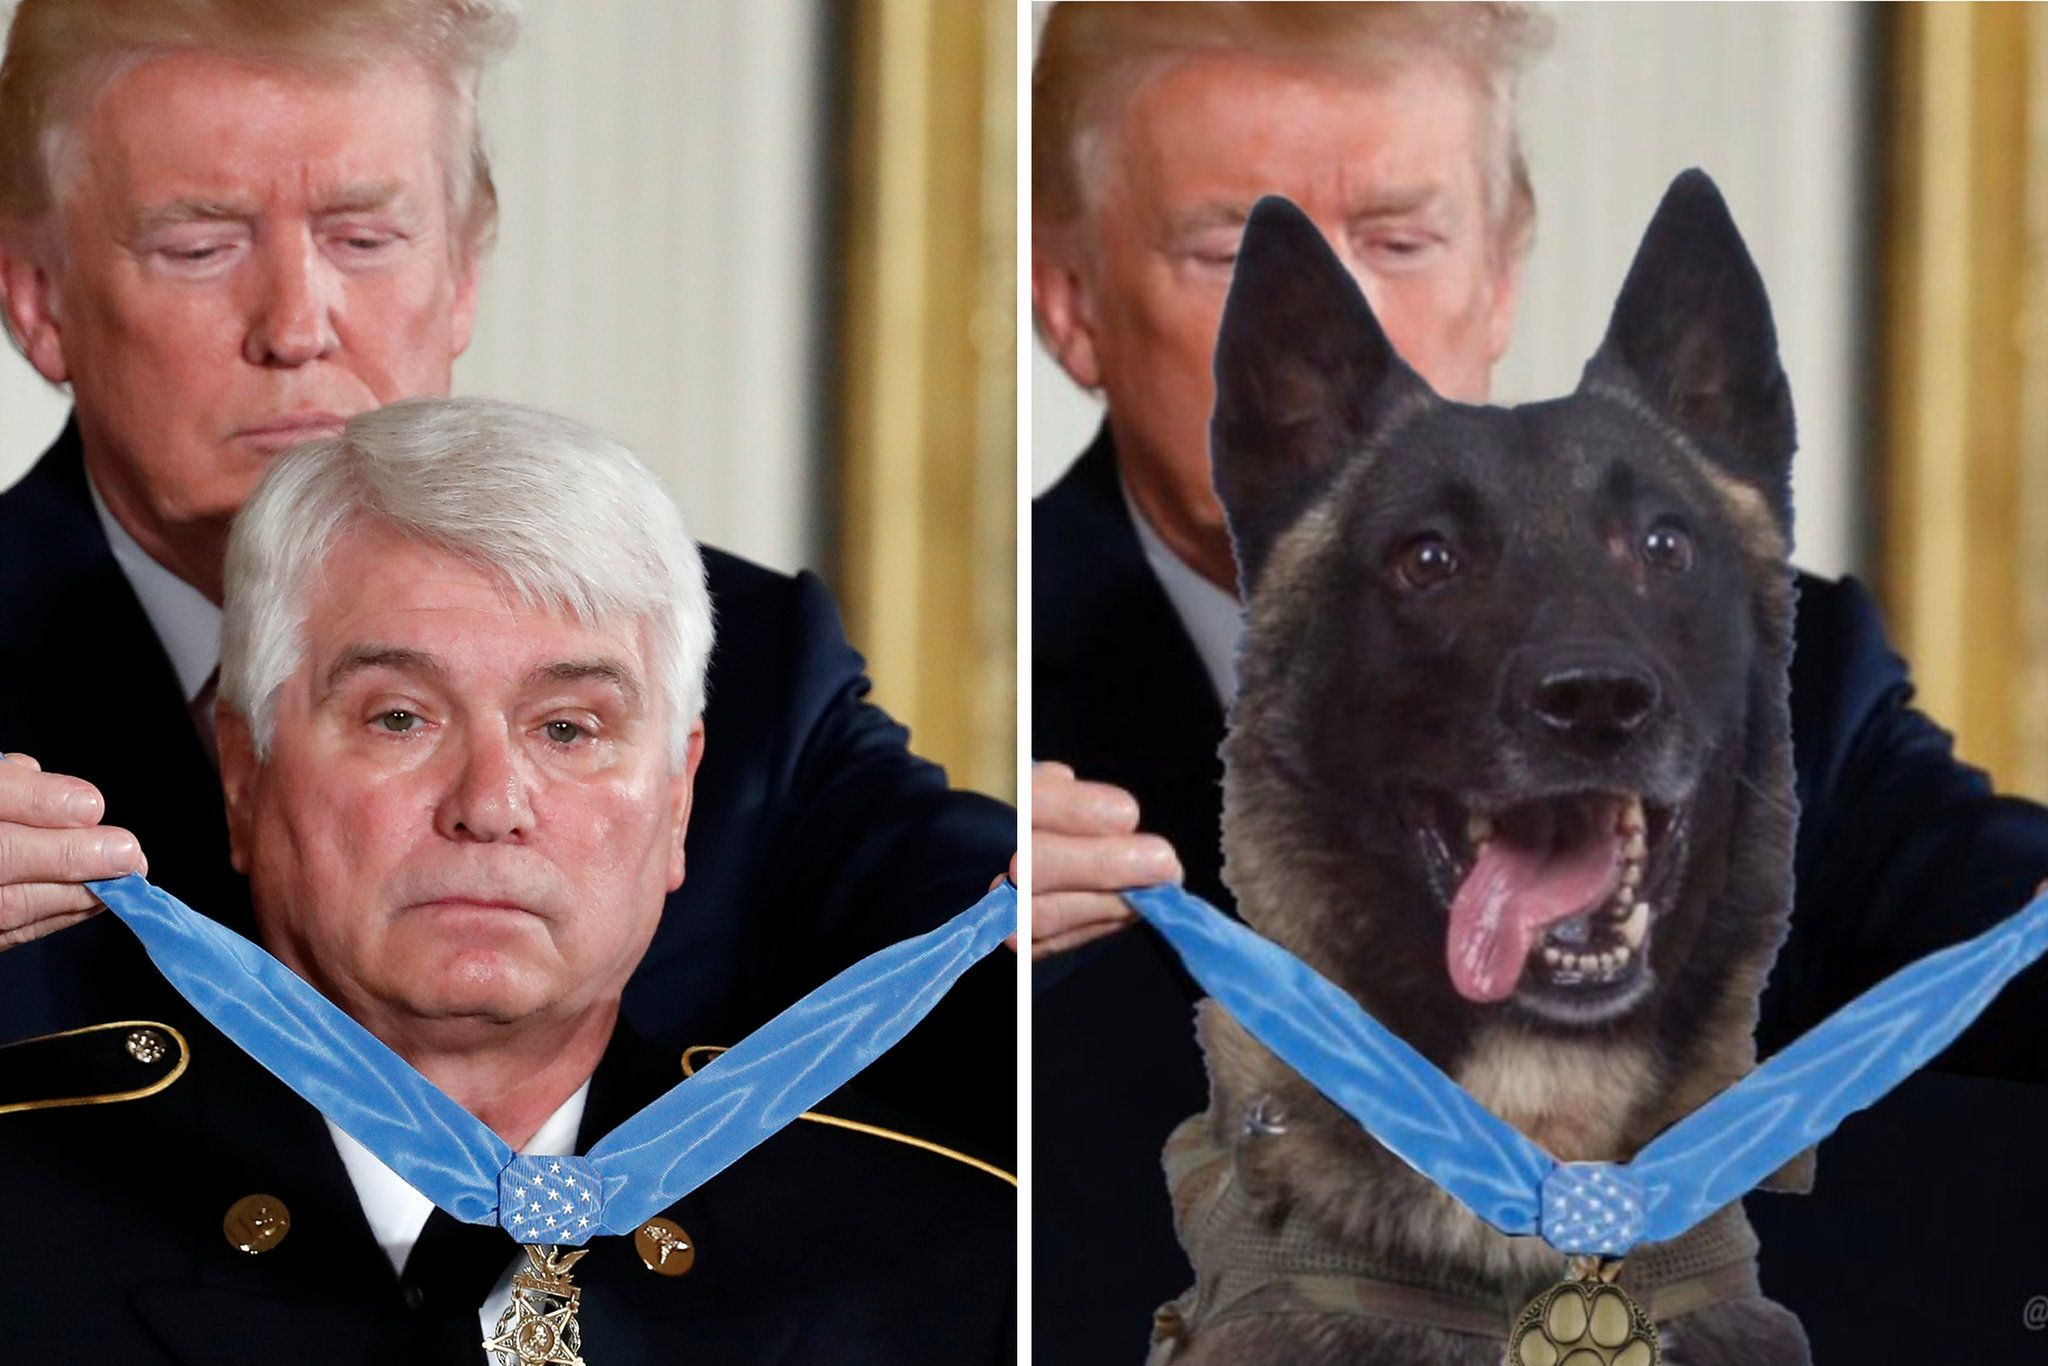 Trump Tweets Faked Photo Of Hero Dog Getting A Medal Fake Photo Lap Dogs Hero